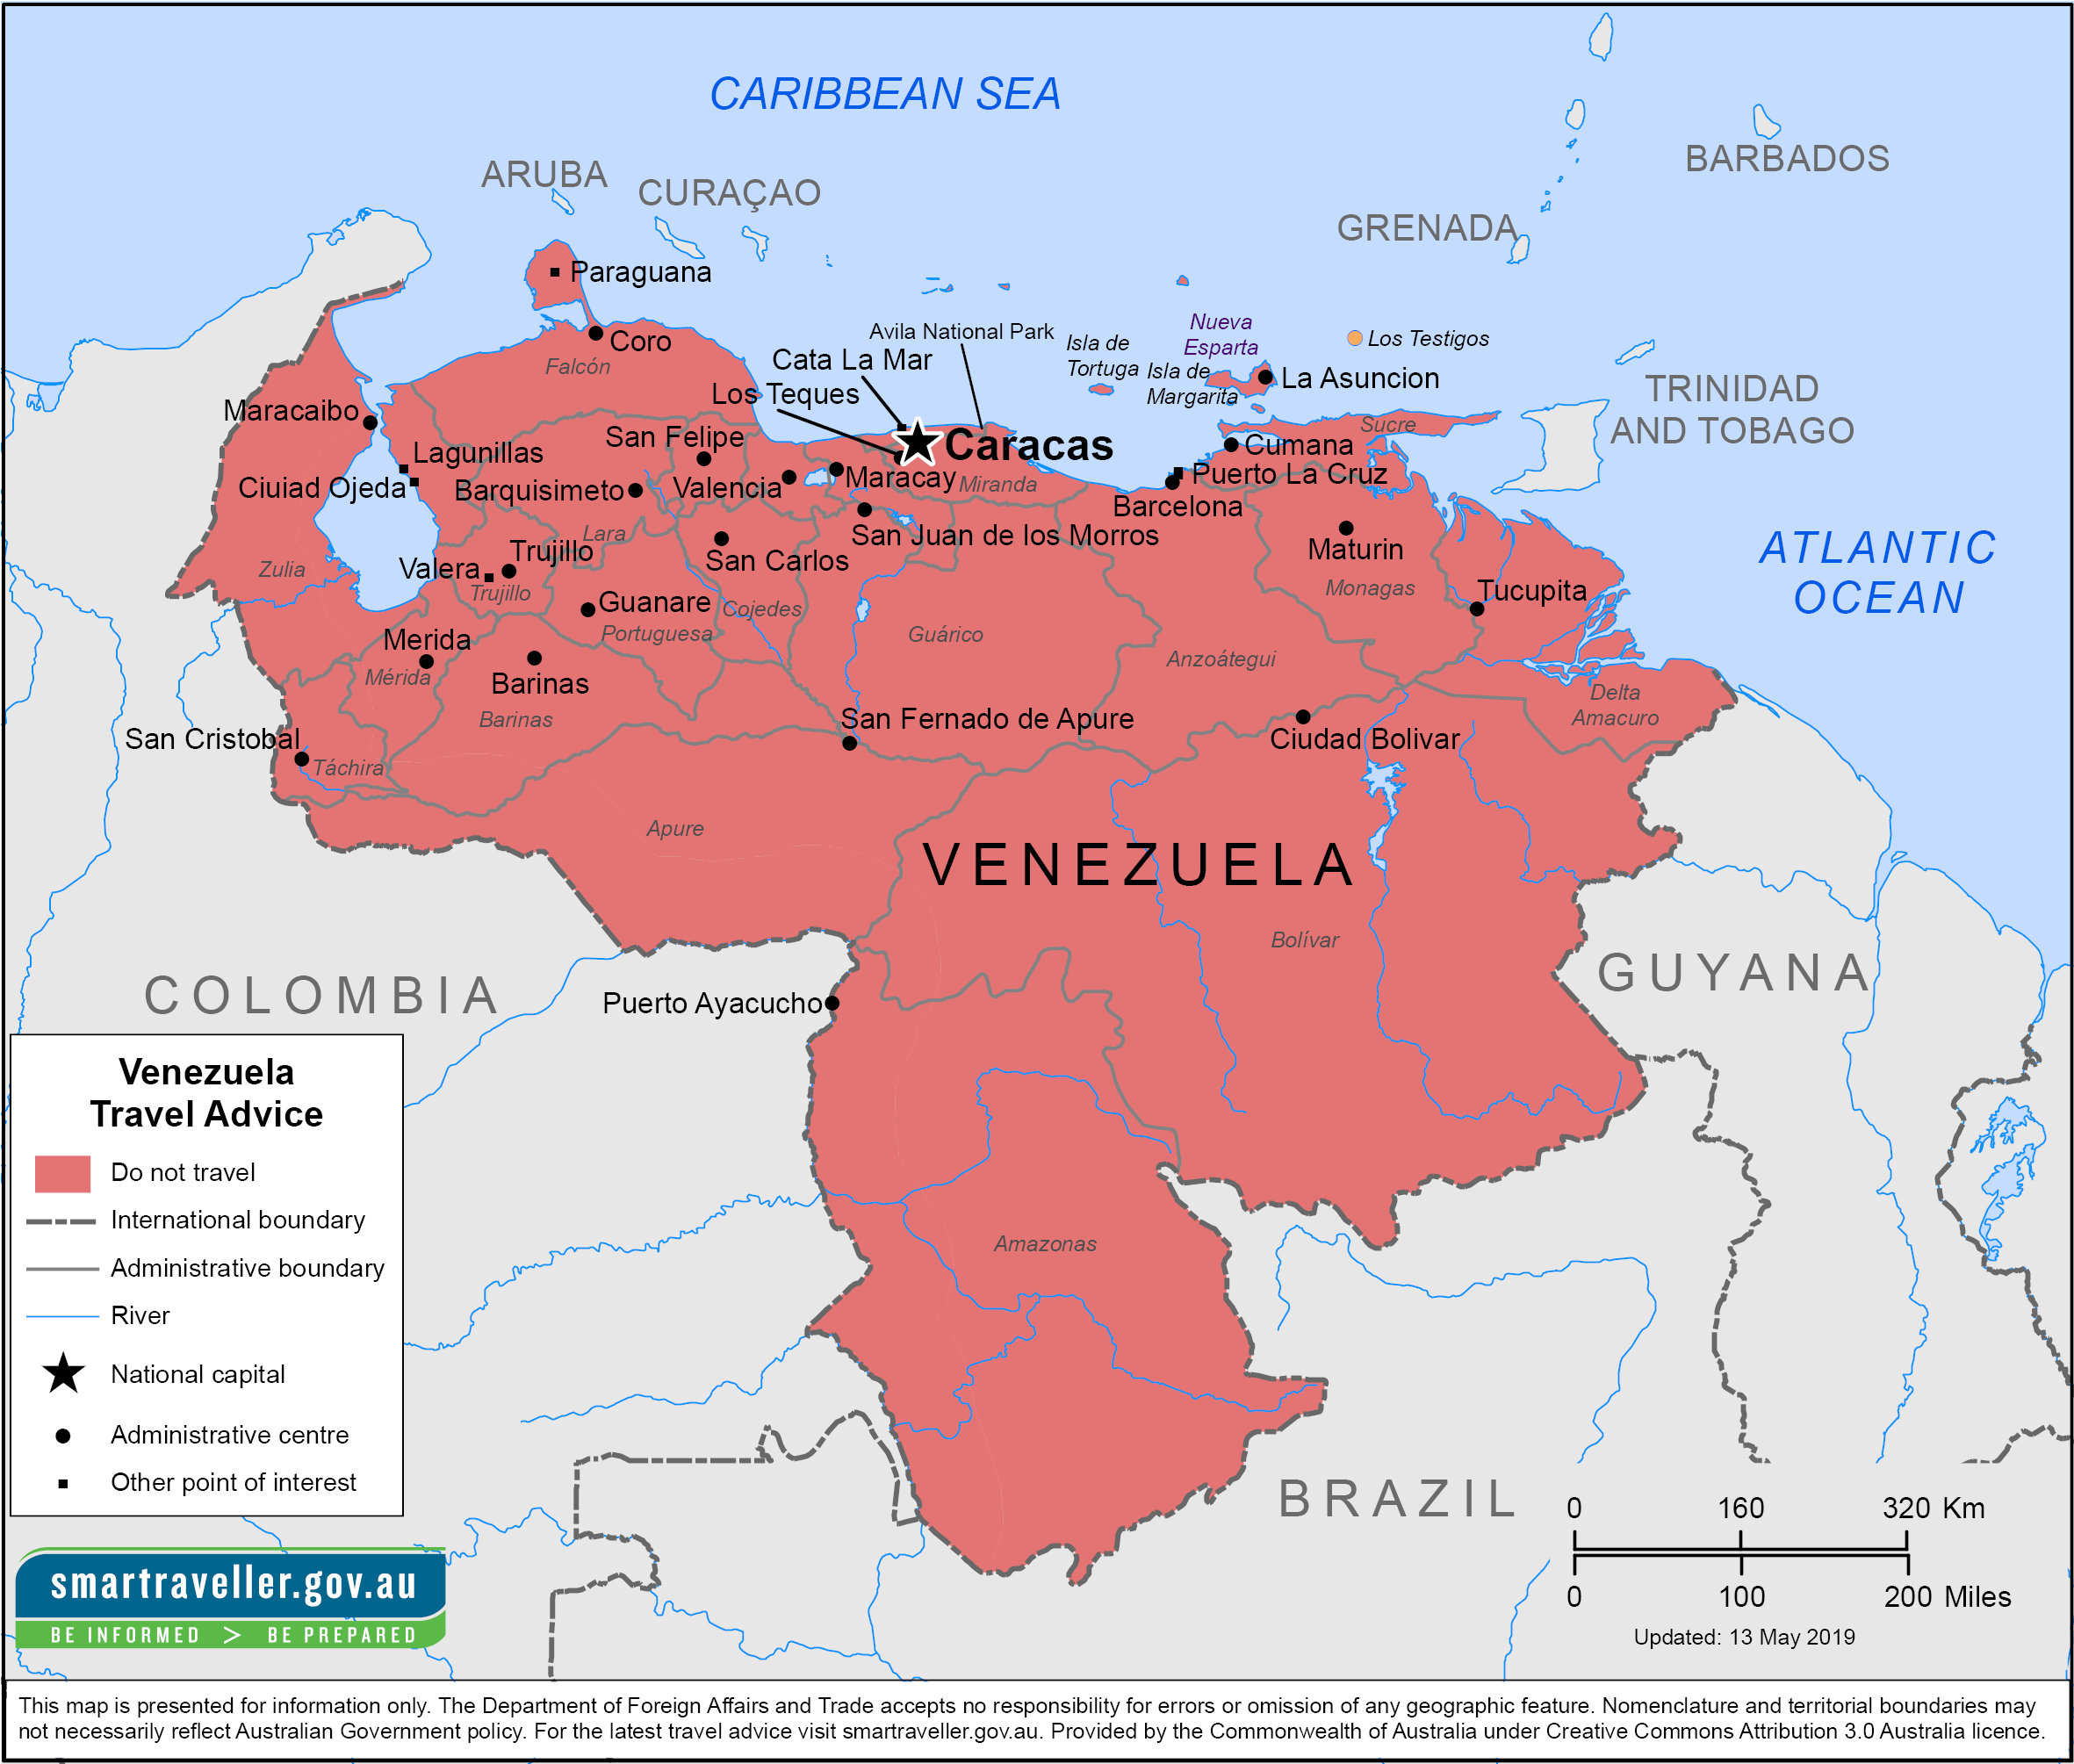 Venezuela-Travel-Insurance | AARDY.com